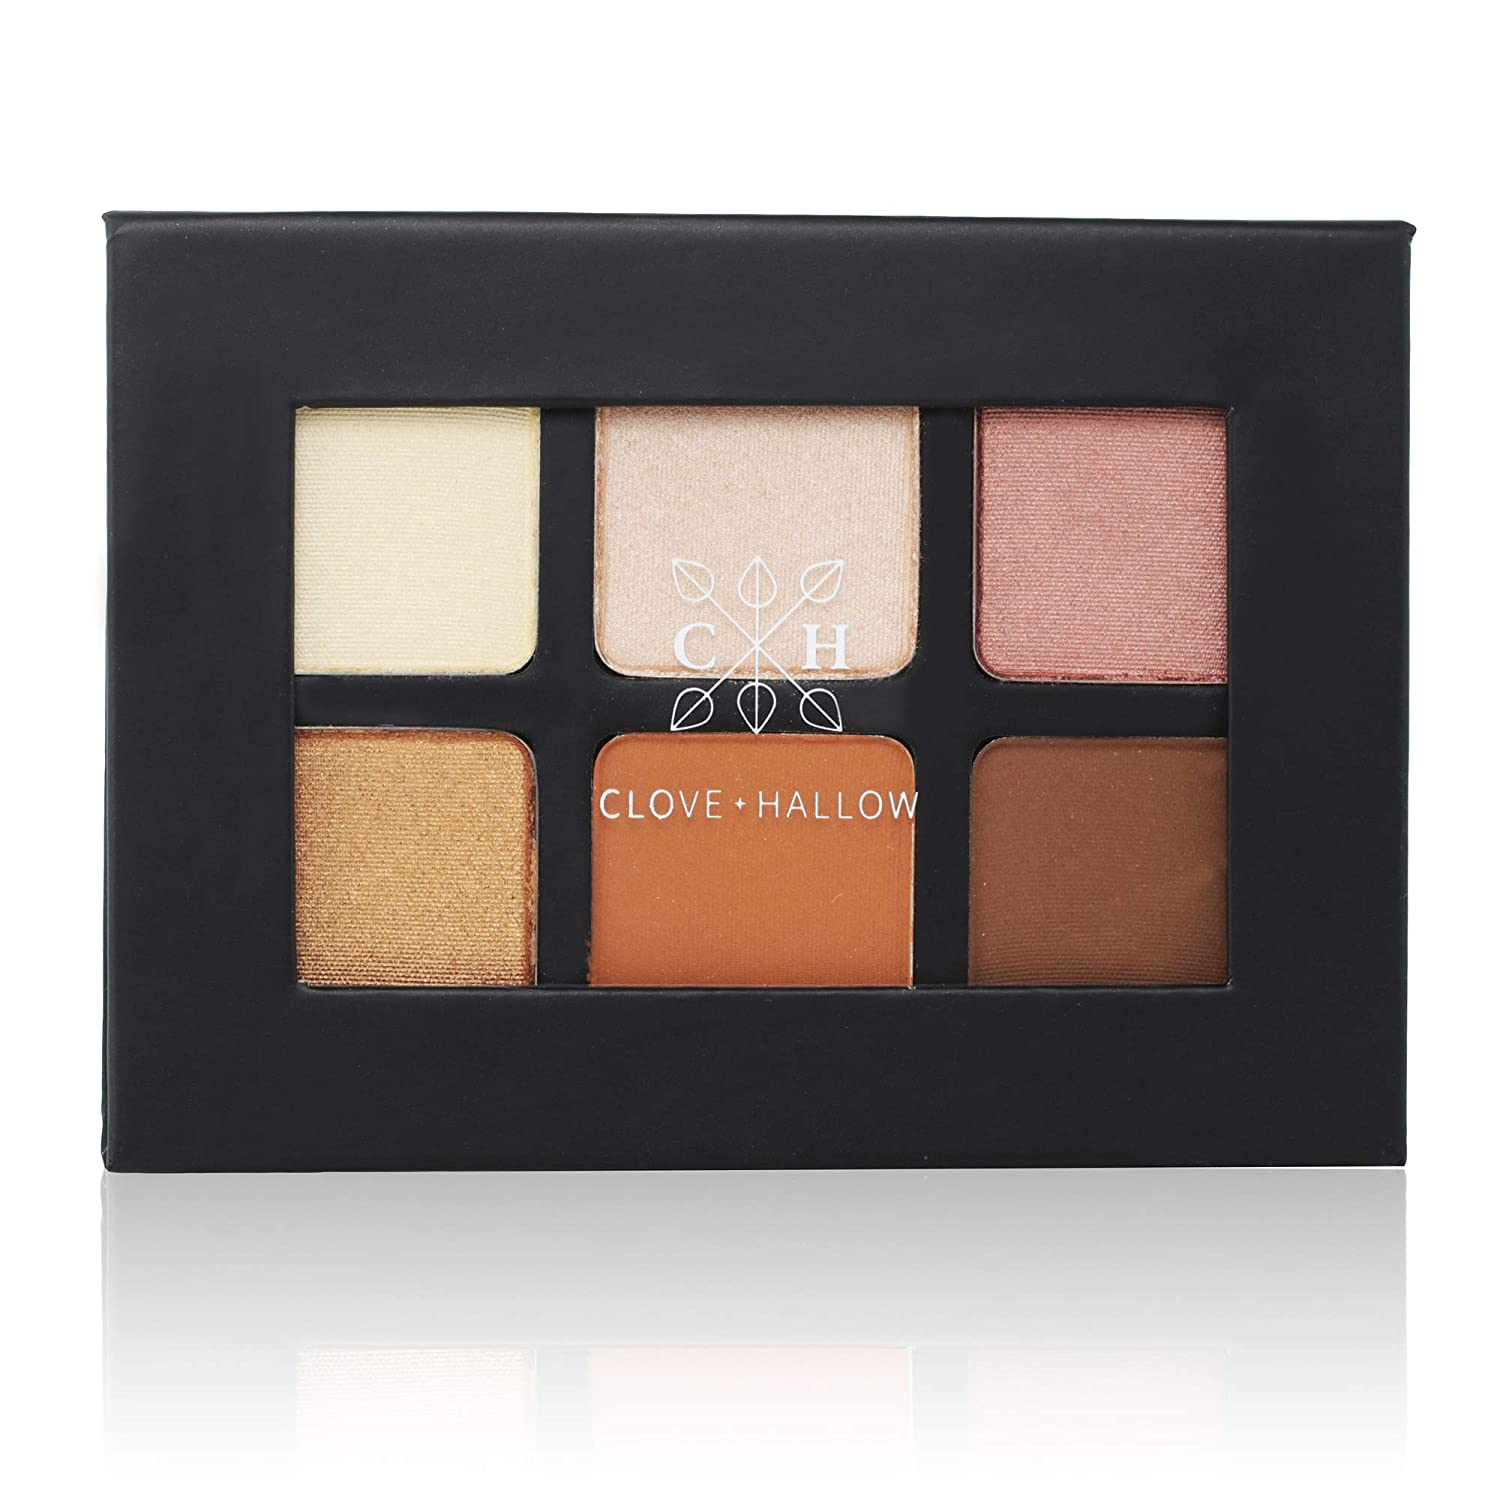 CLOVE + HALLOW Pressed Eyeshadow Palette - Organic Highlighter Makeup - Sunrise